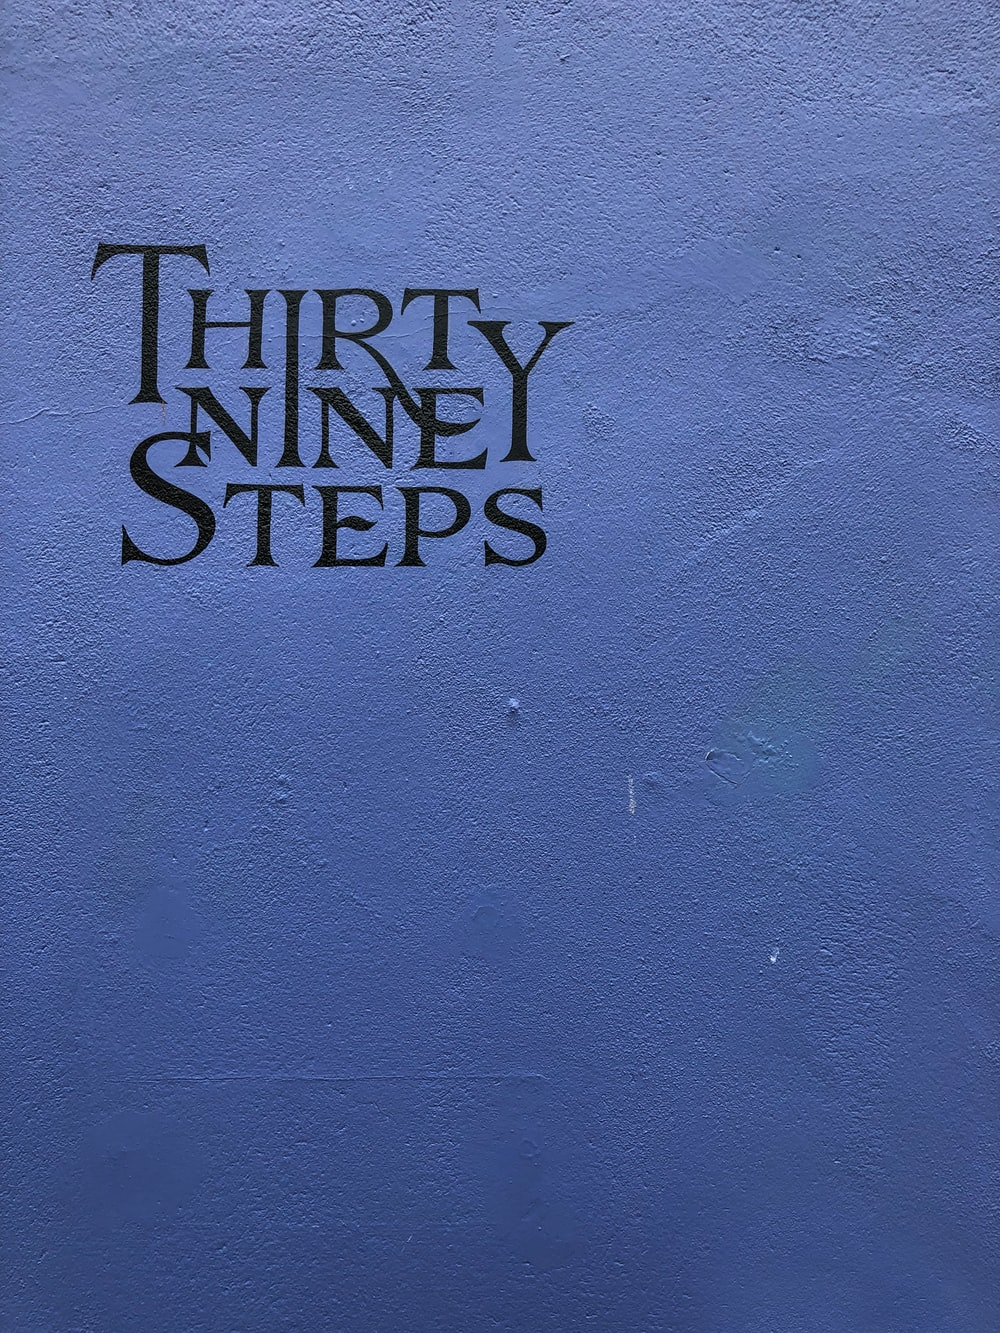 Thirty Nine Steps text